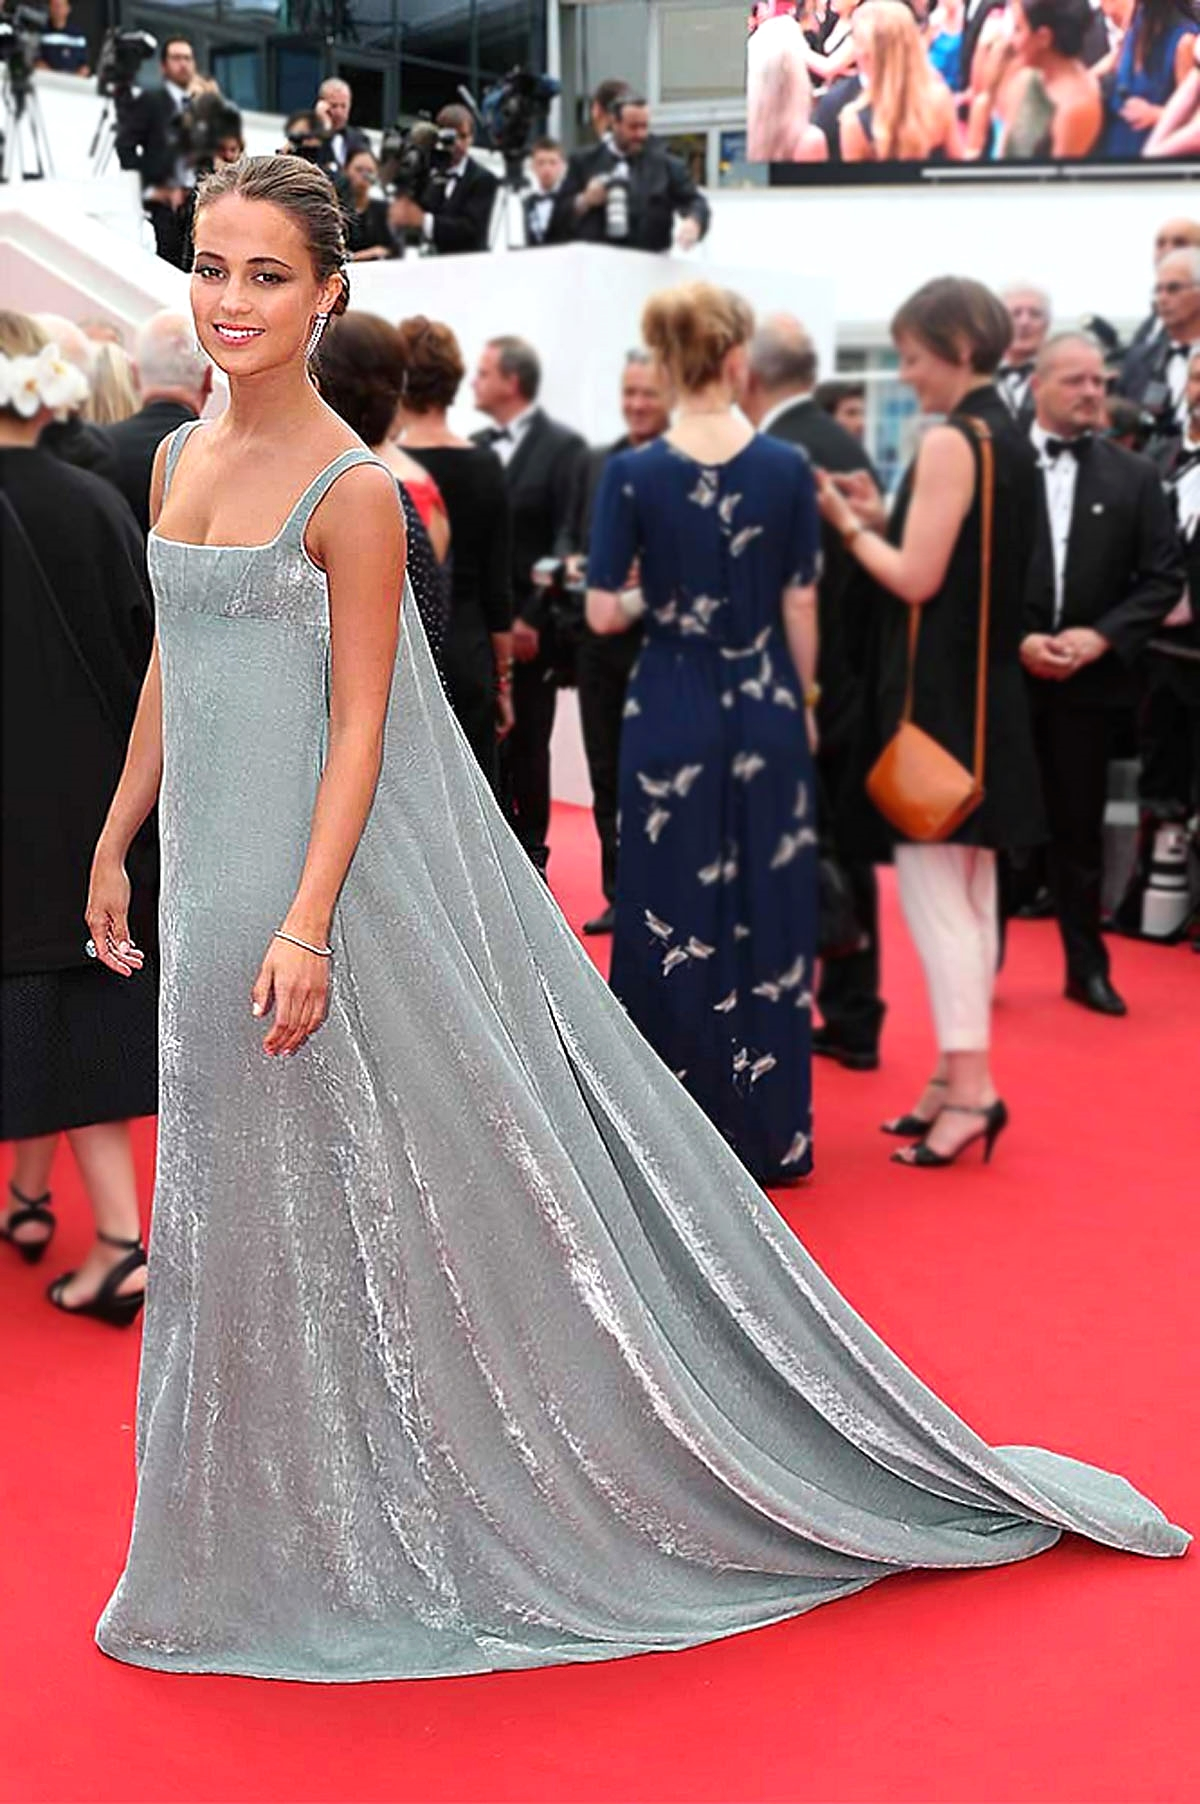 Alicia Vikander in Valentino Couture                                              vogue.com/ Getty